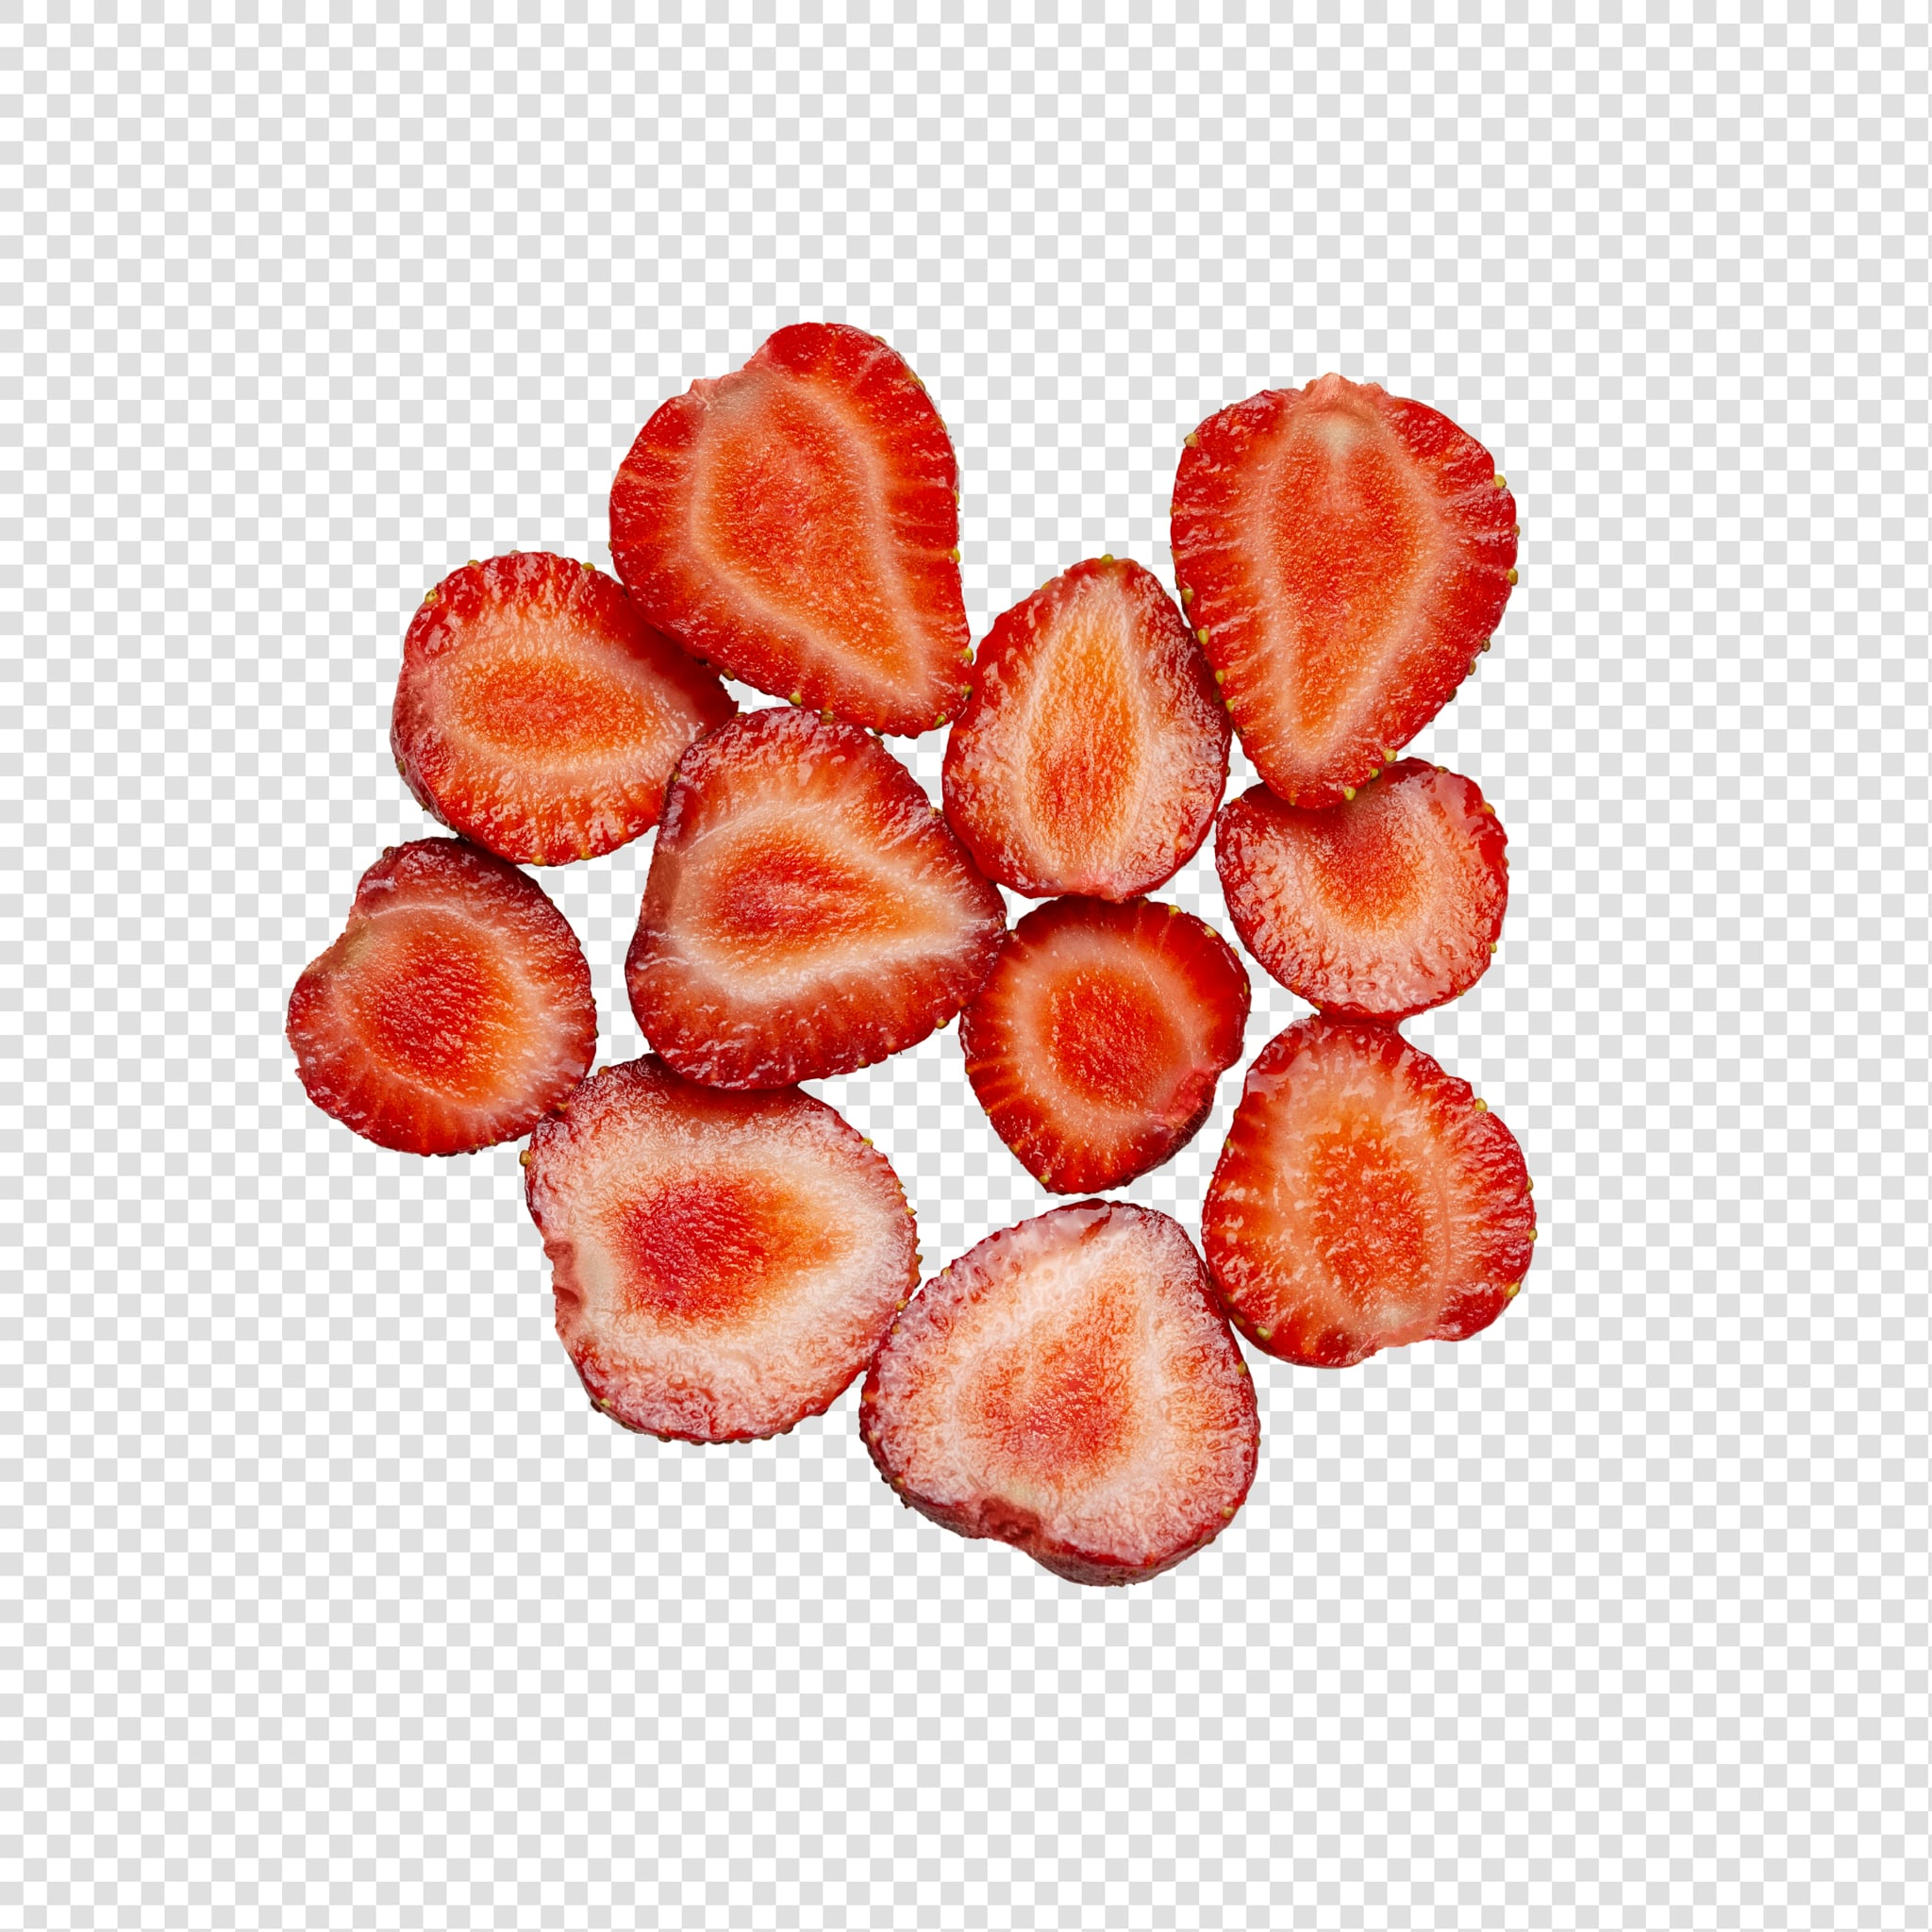 PSD Layered Strawberry image